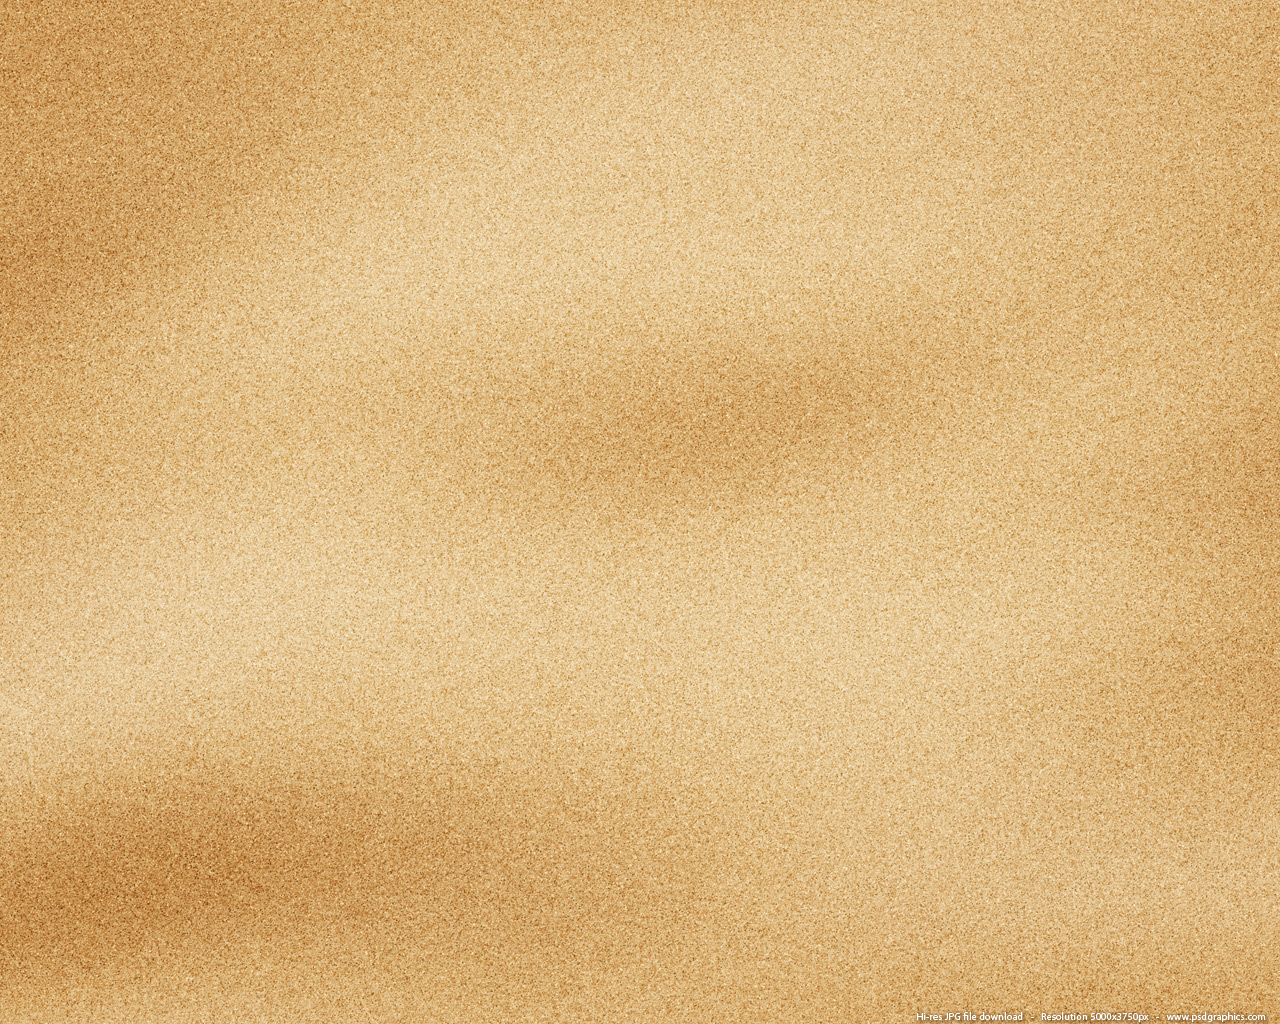 Sand Backgrounds